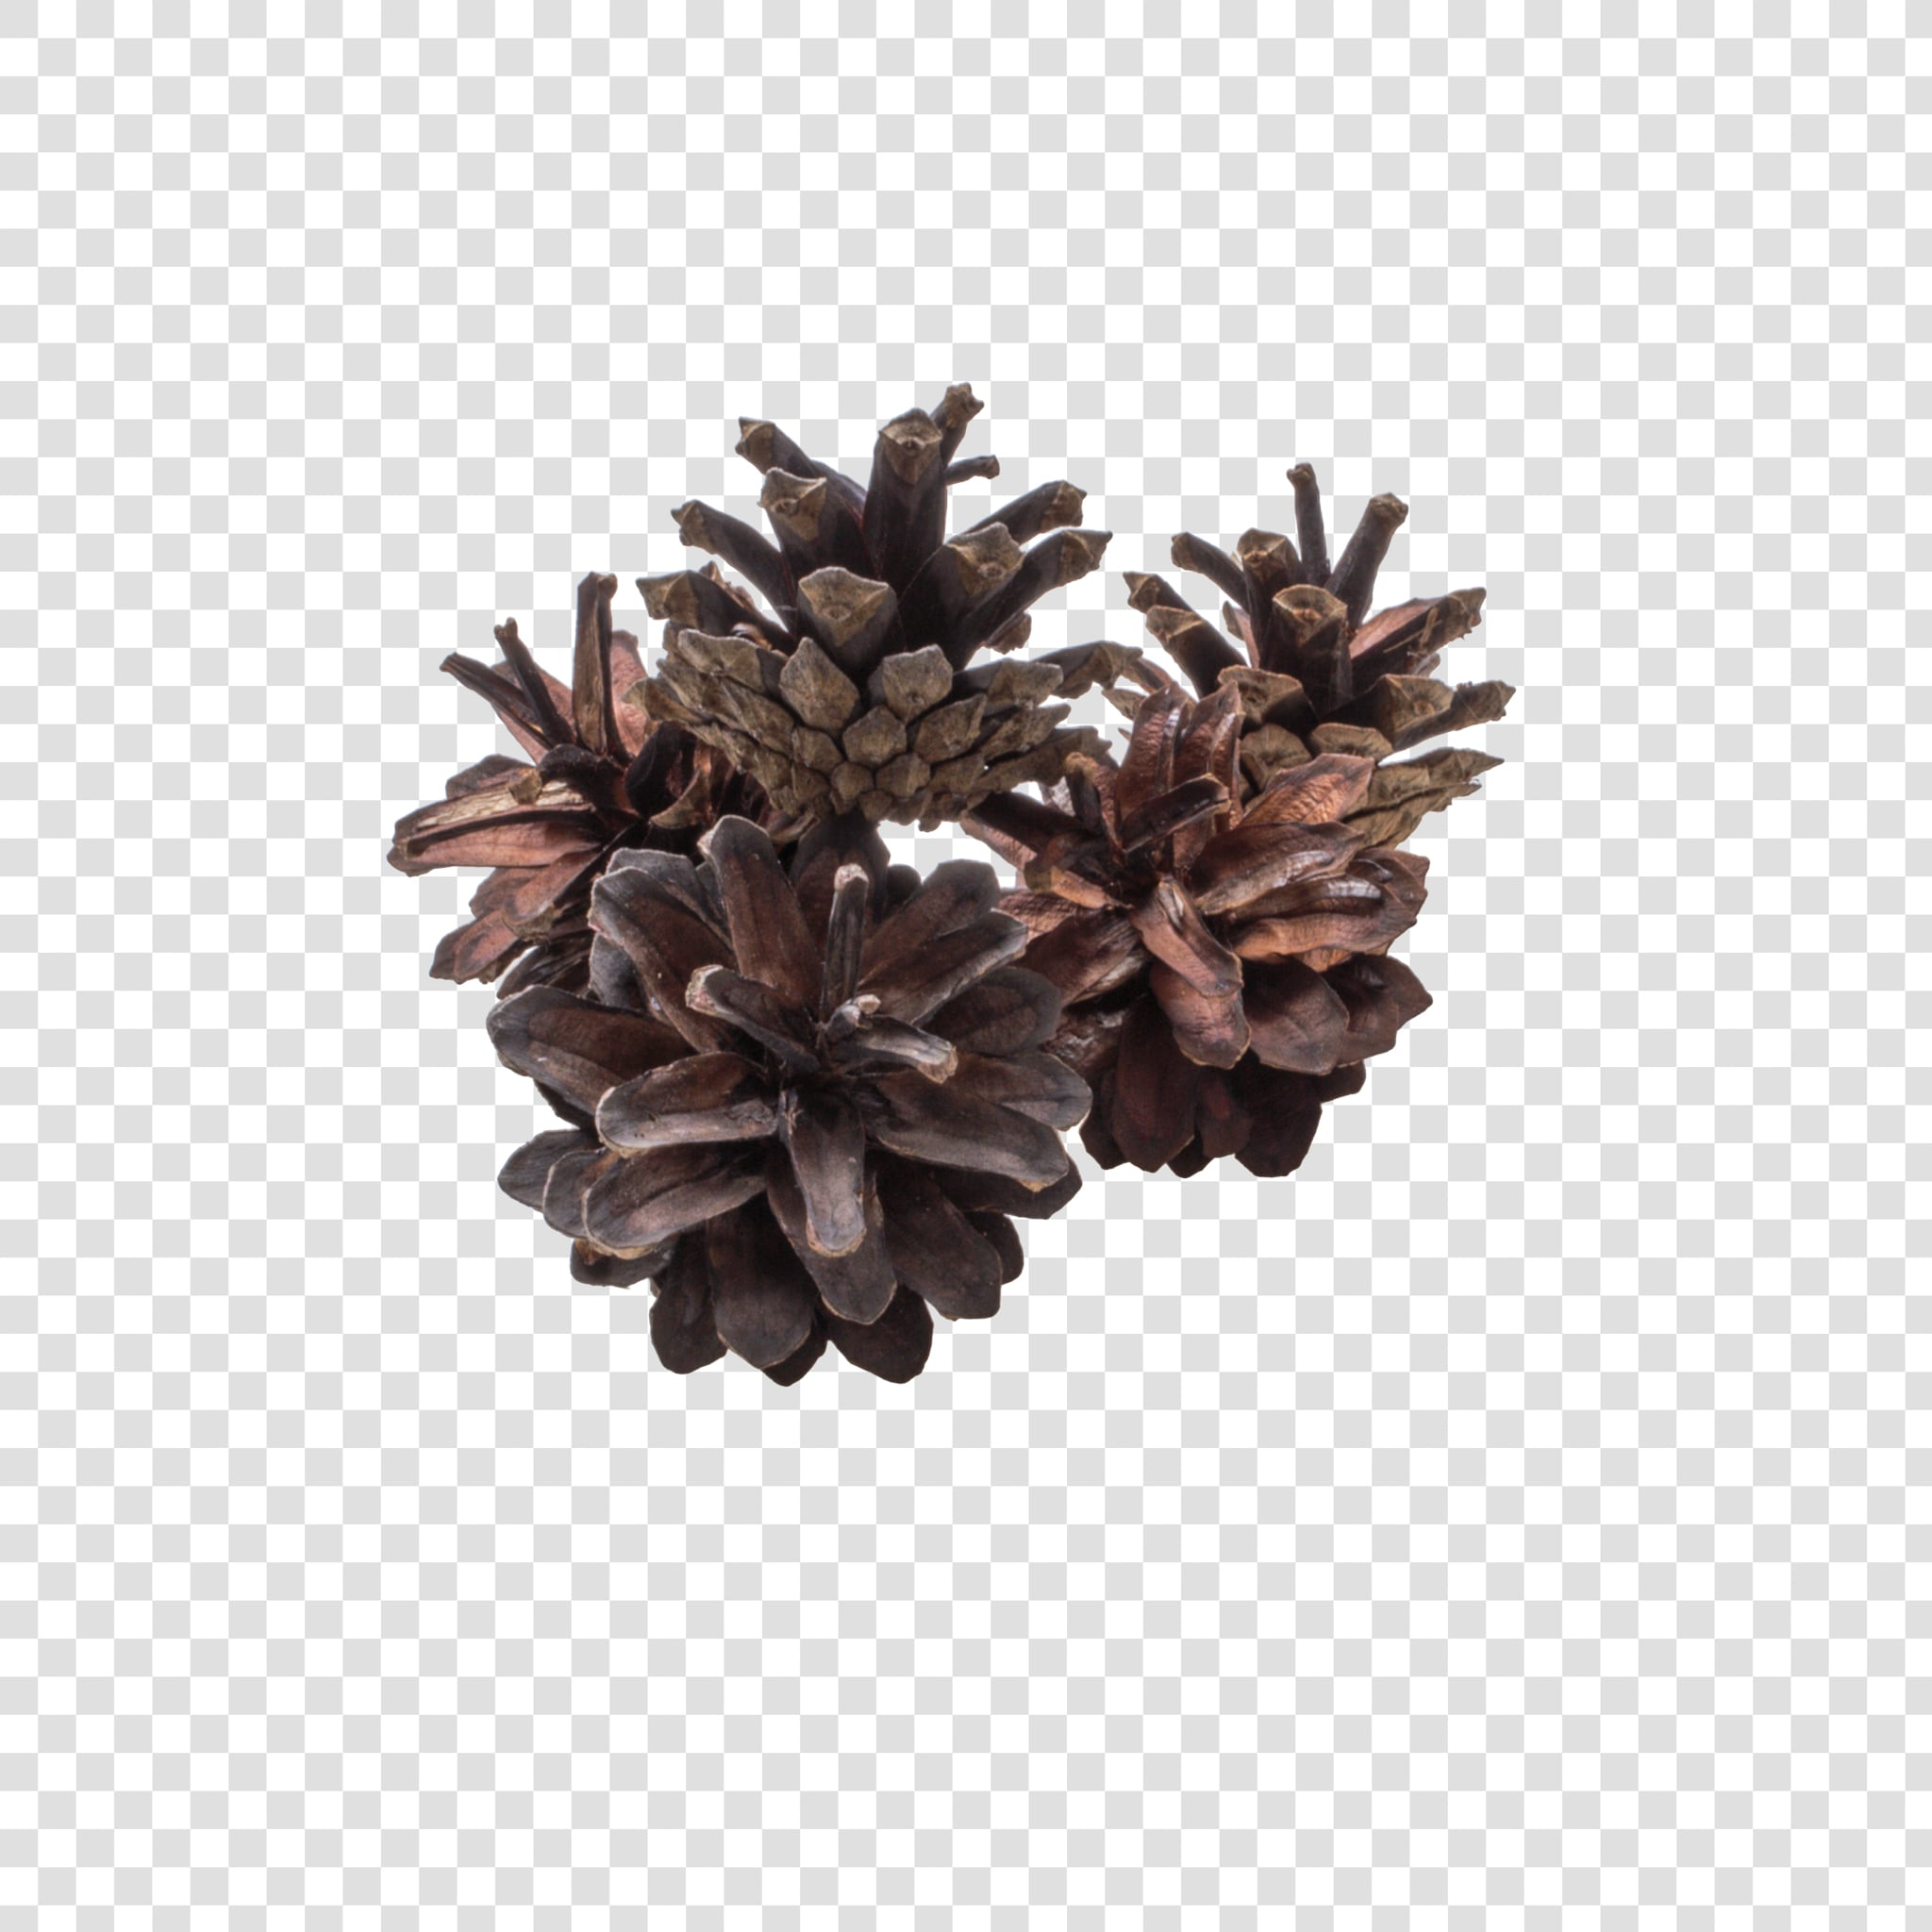 Dried flower PSD layered image